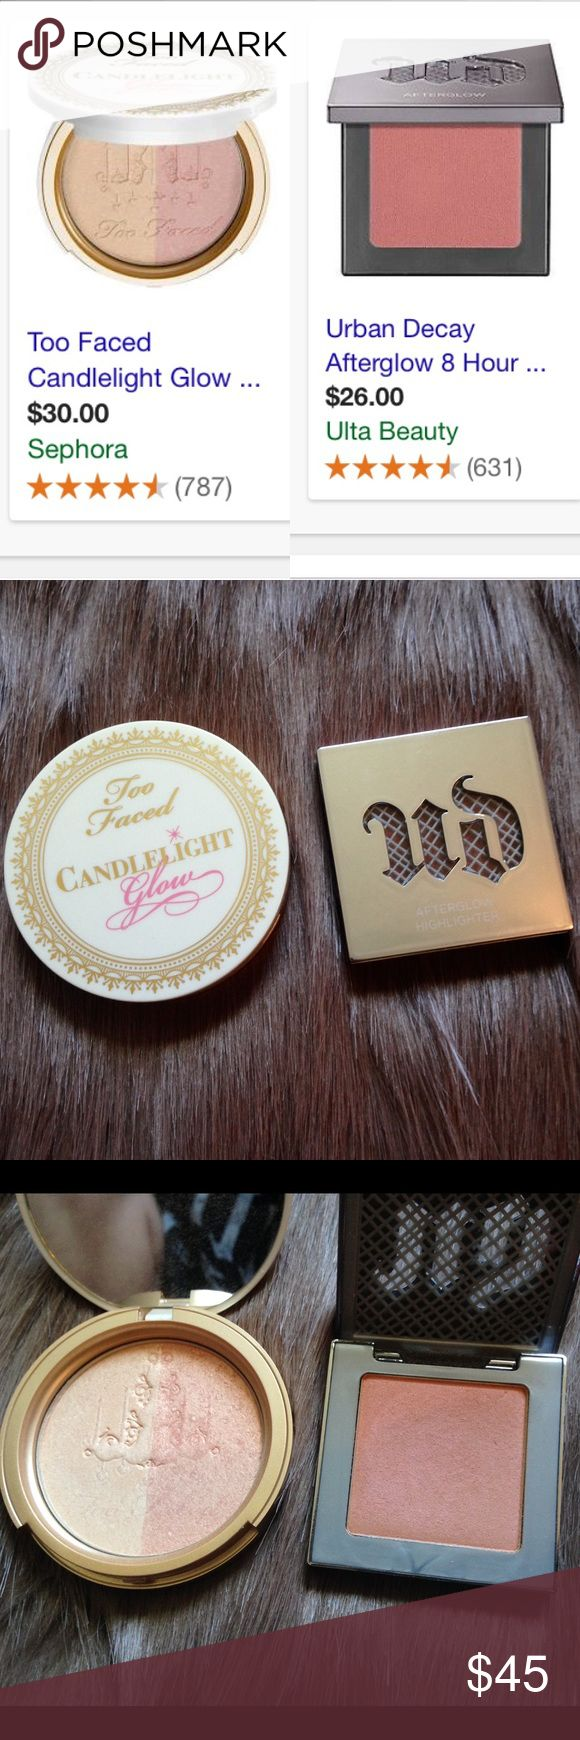 Best 25+ Too faced highlighter ideas only on Pinterest | Country ...